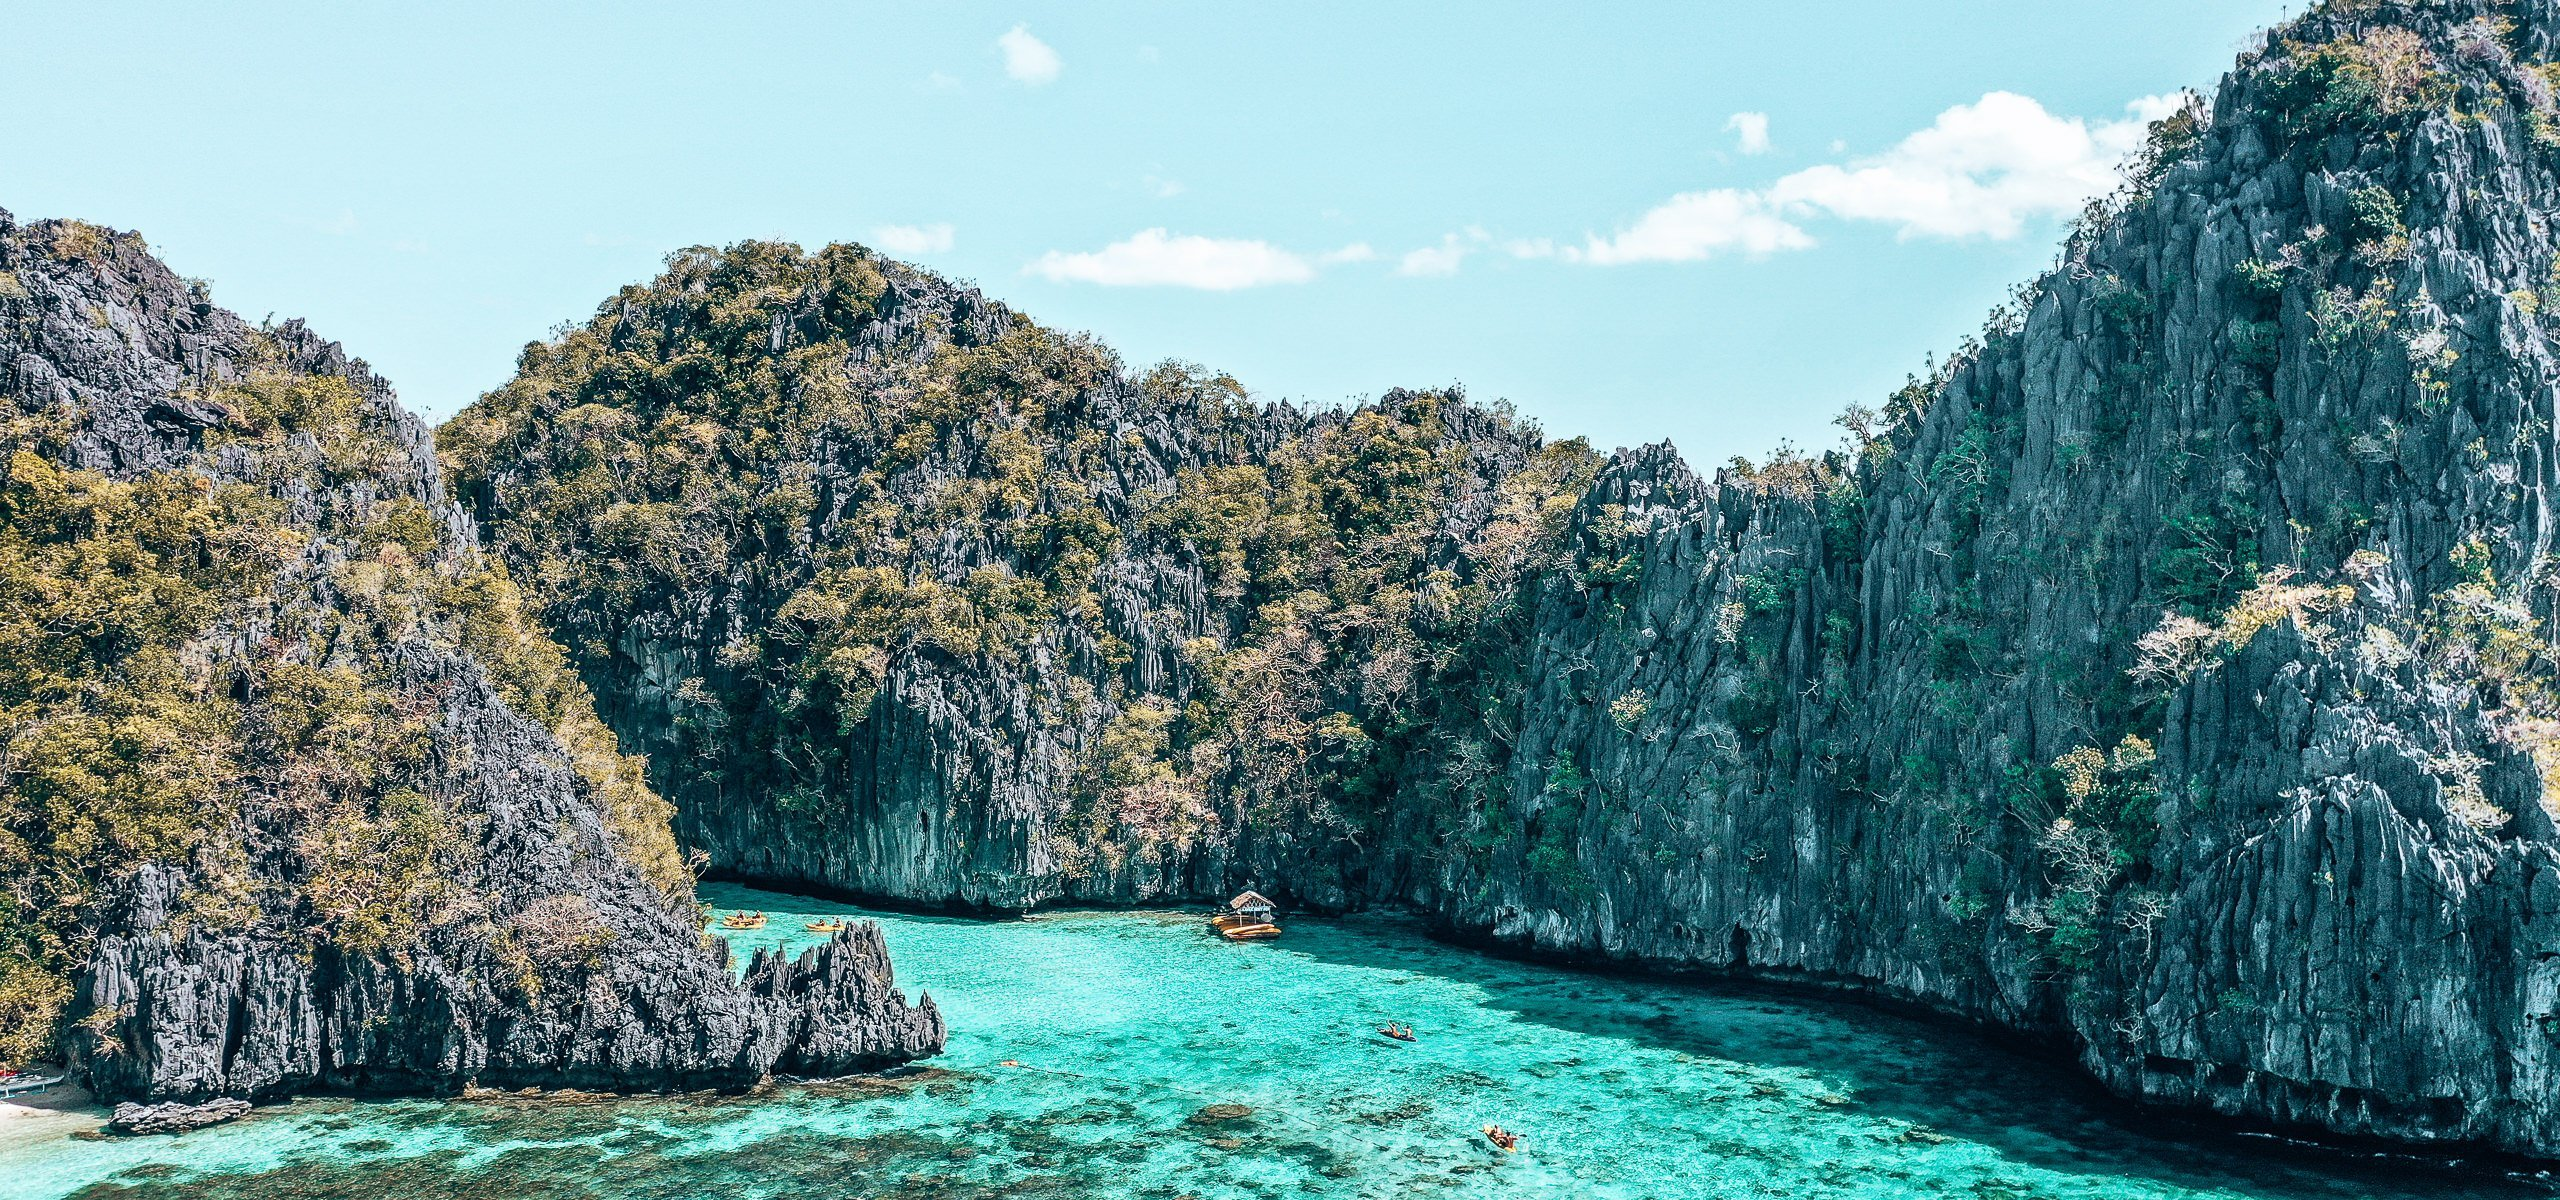 Island Hopping in the Philippines? Which boat tour should I choose